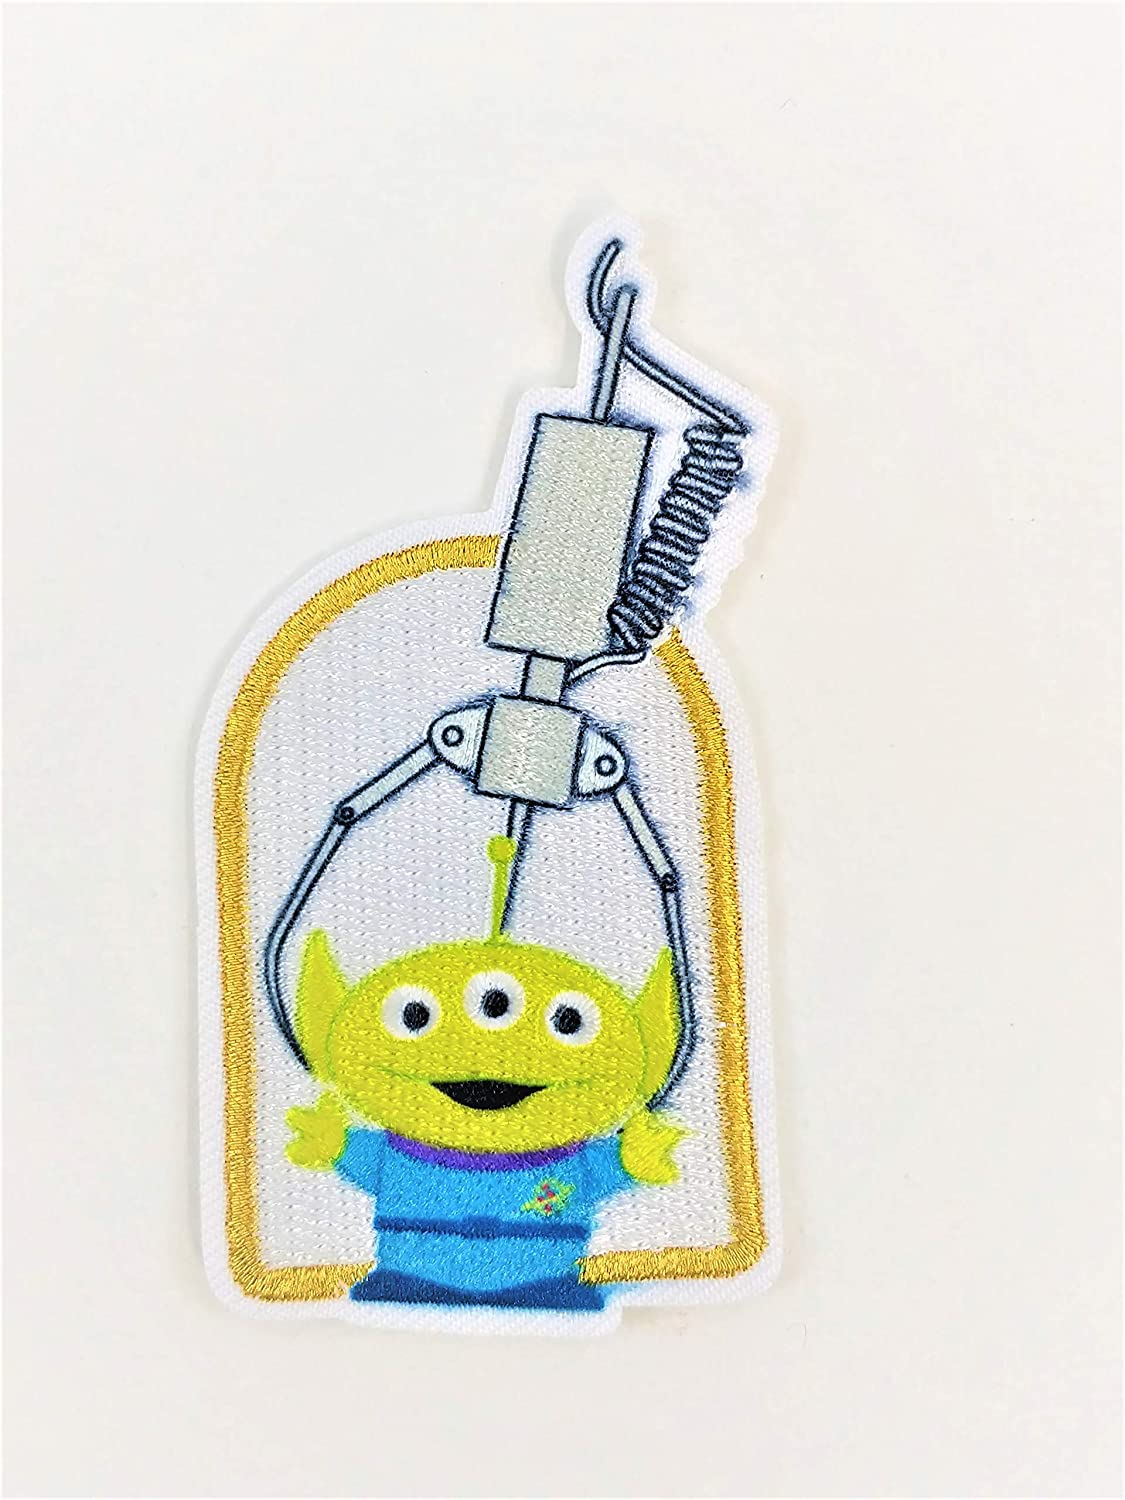 Pixar Toy Story Alien Claw Embroidered Iron On Sew On Patch Applique